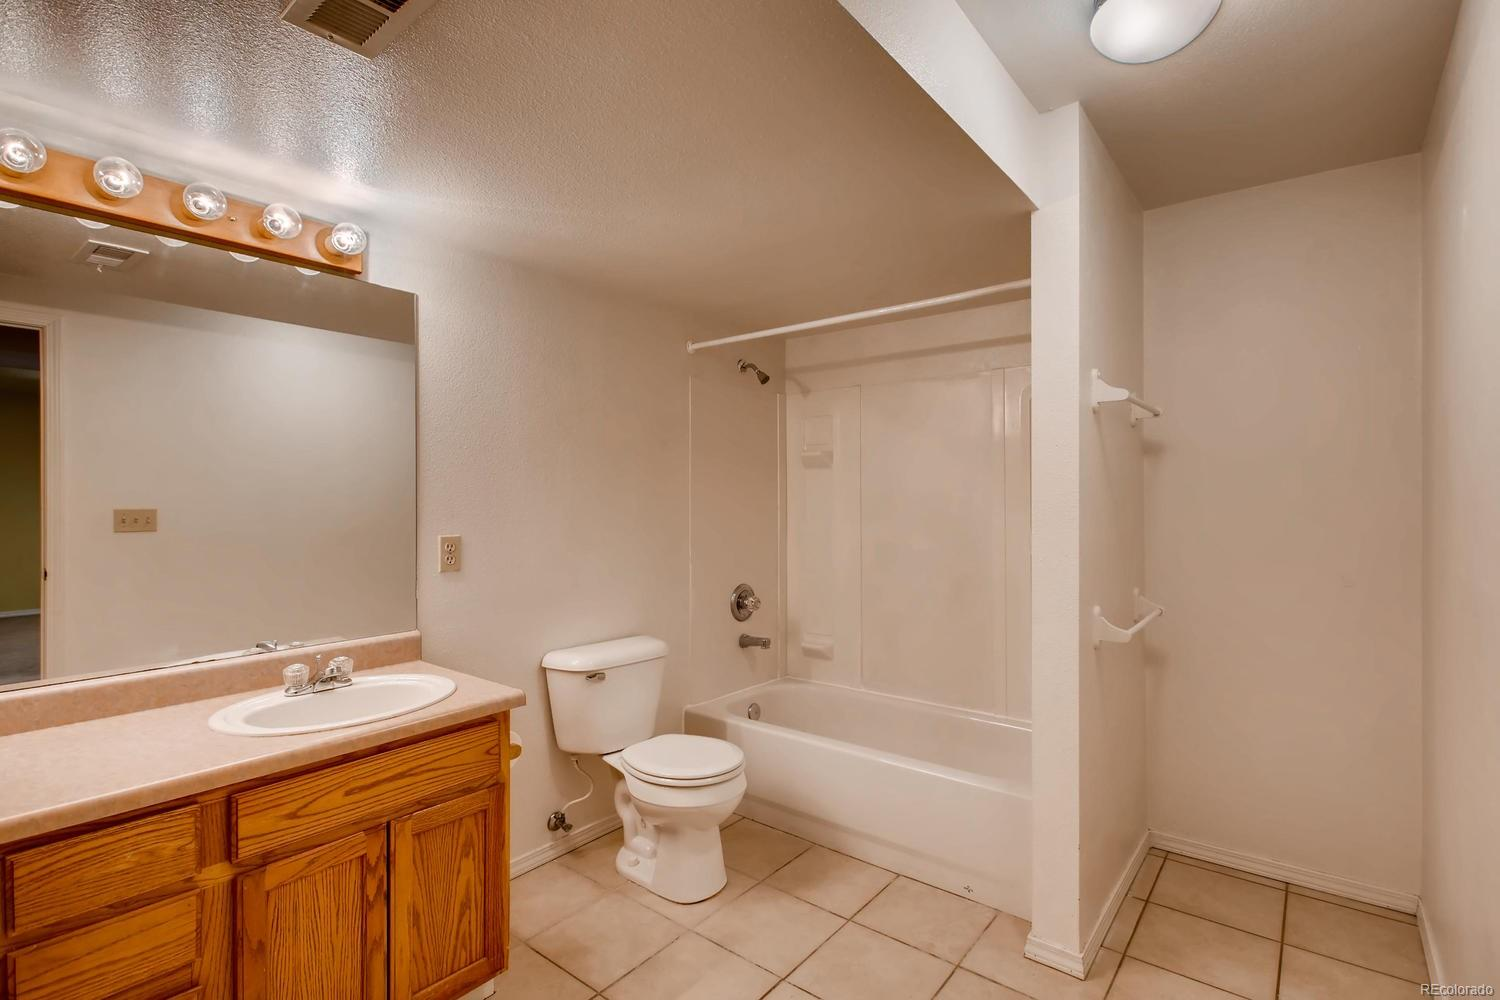 Large full bathroom in the basement